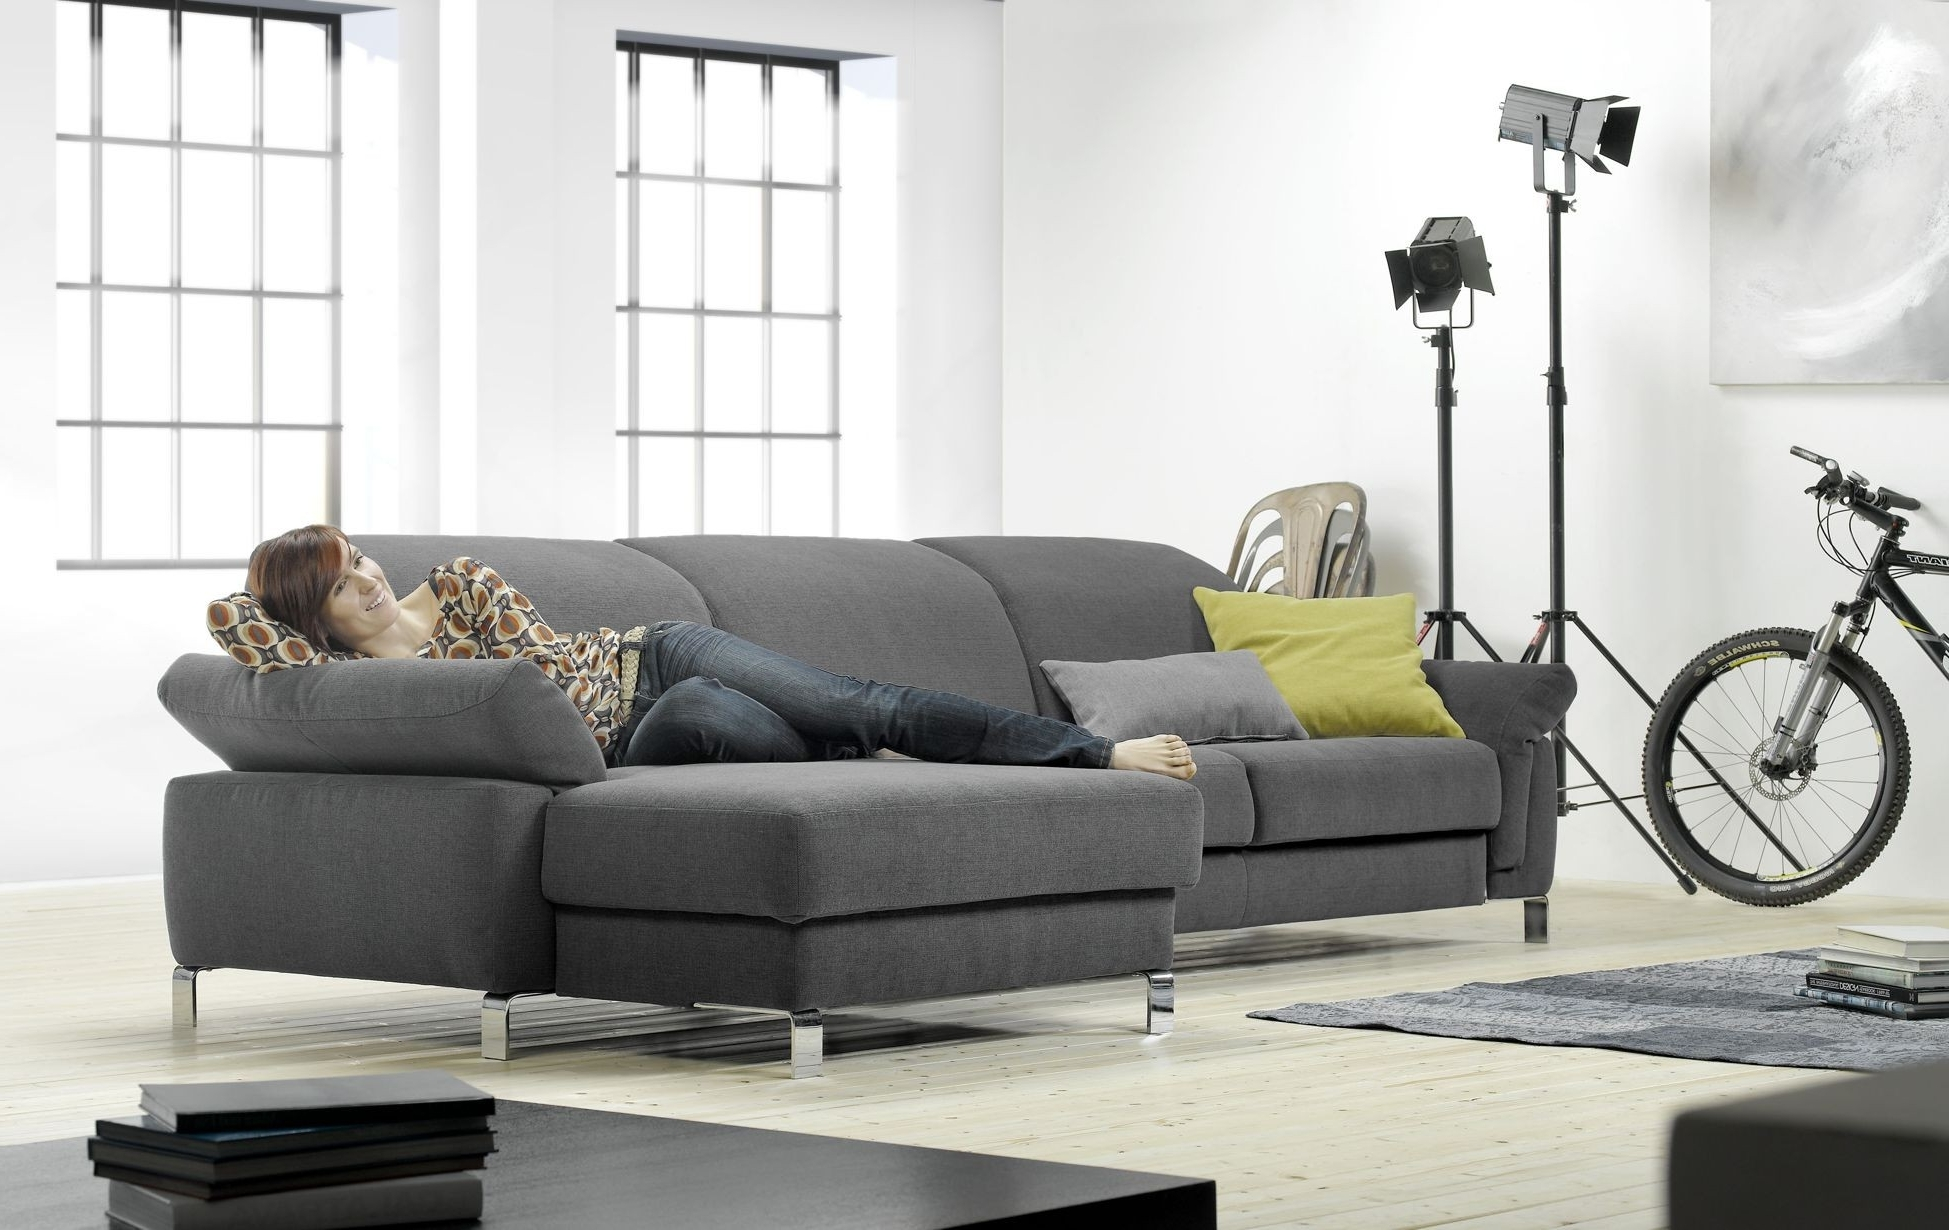 Furniture : Sectional Couch Nanaimo Sectional Sofa Bed With Intended For Most Popular Nanaimo Sectional Sofas (View 2 of 15)